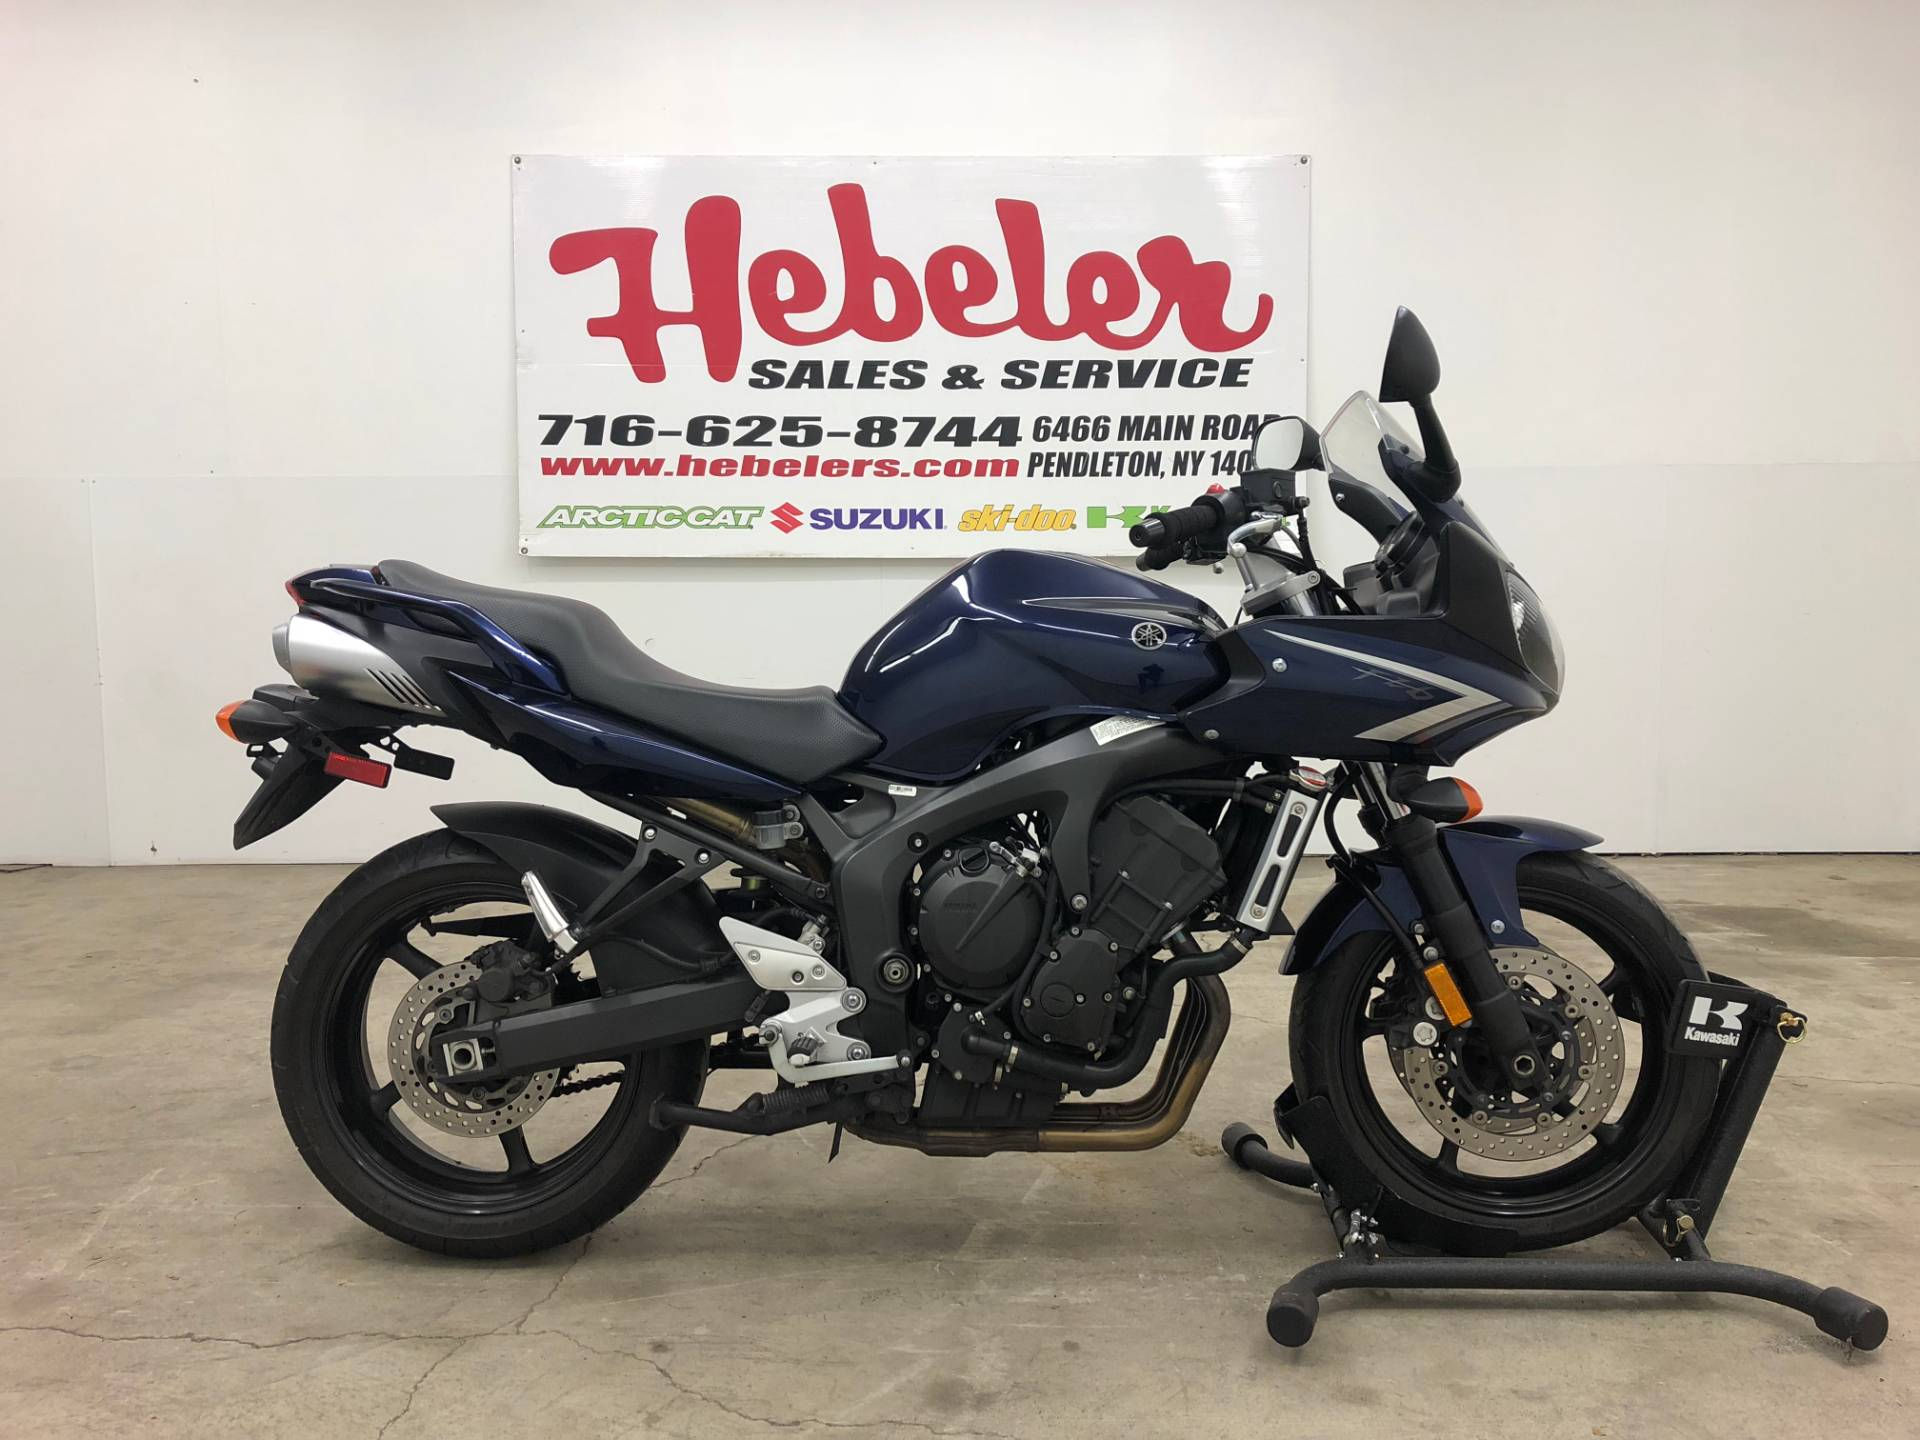 2008 Yamaha FZ6 in Pendleton, New York